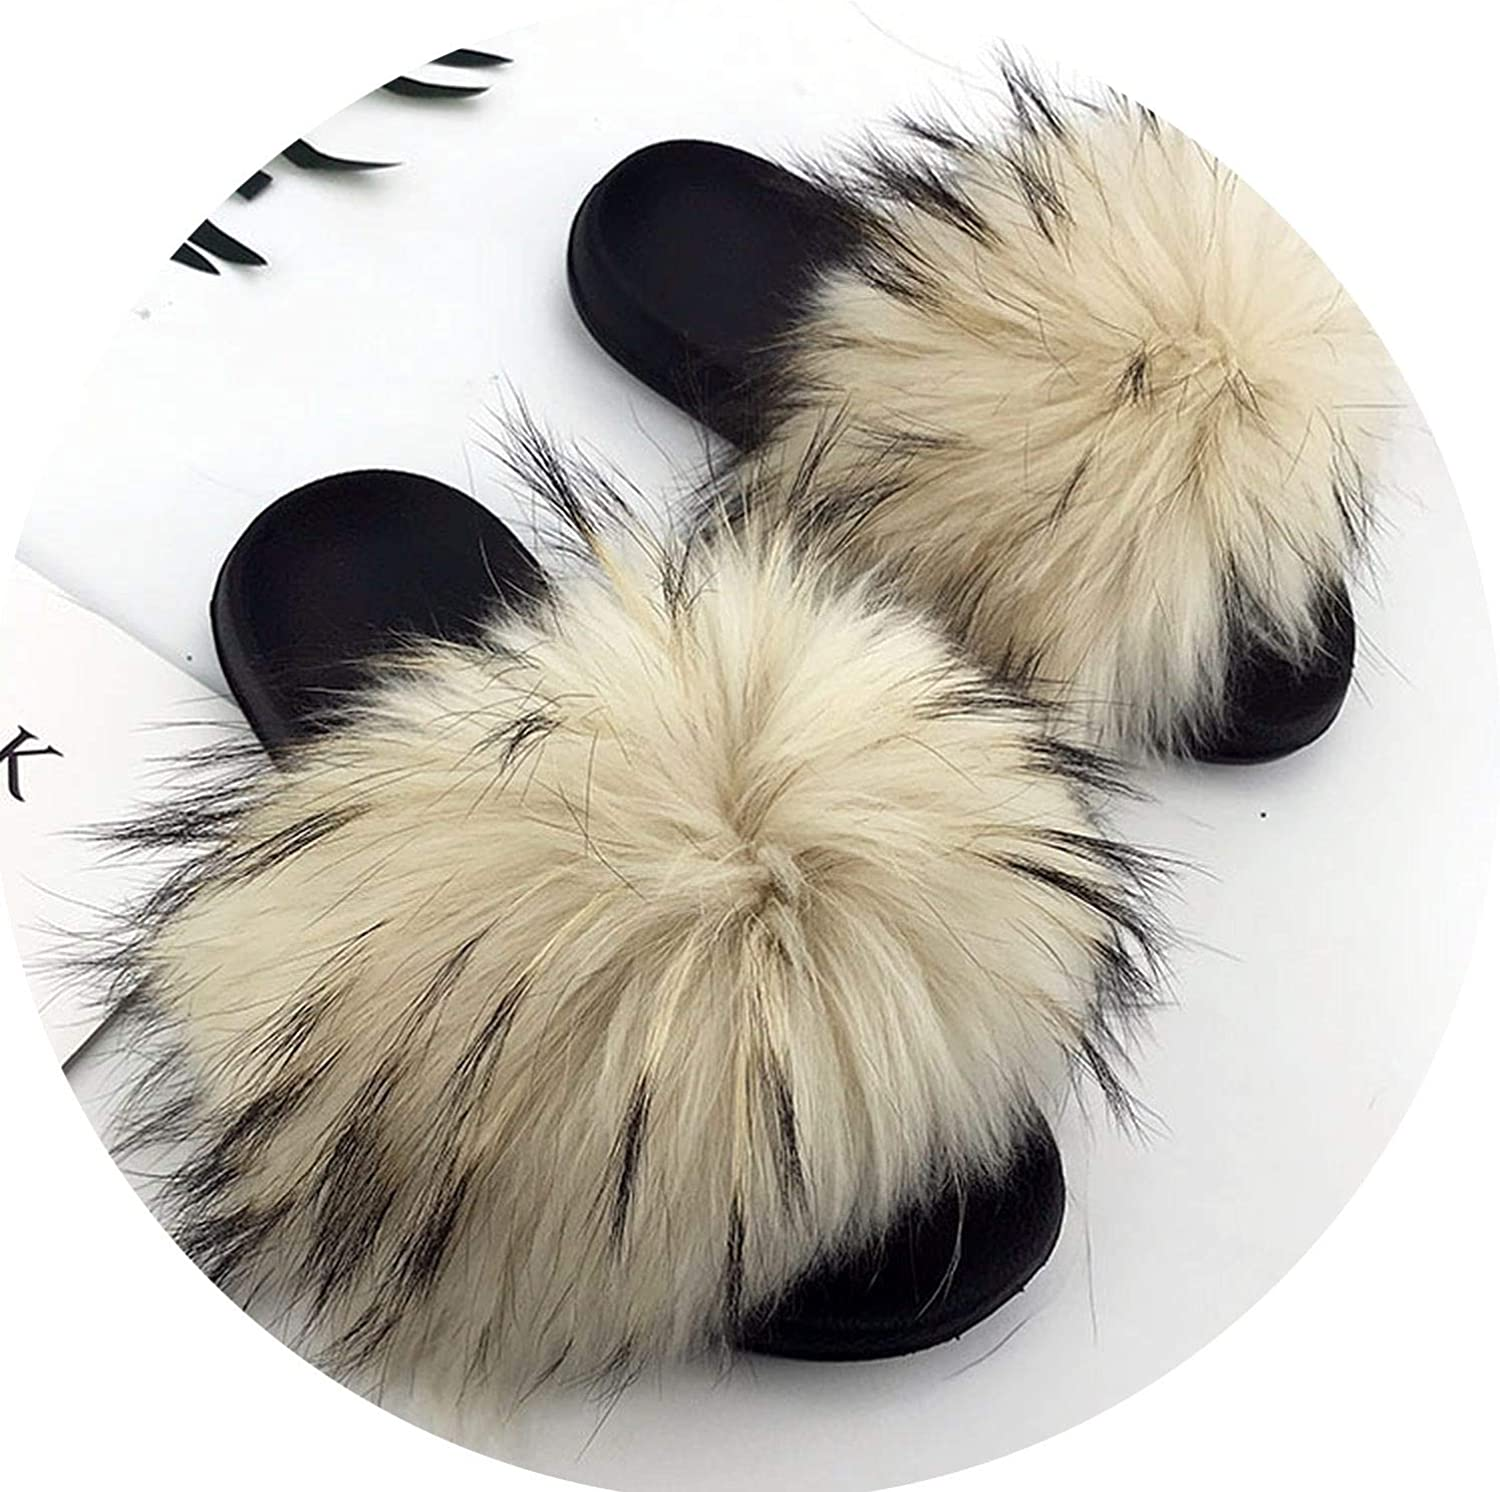 Ferdinanding 2019 Big Full Fur Slippers Real Fox Hair Slides Beach Slides Holiday Fox Fur Slides for Women,See, 10